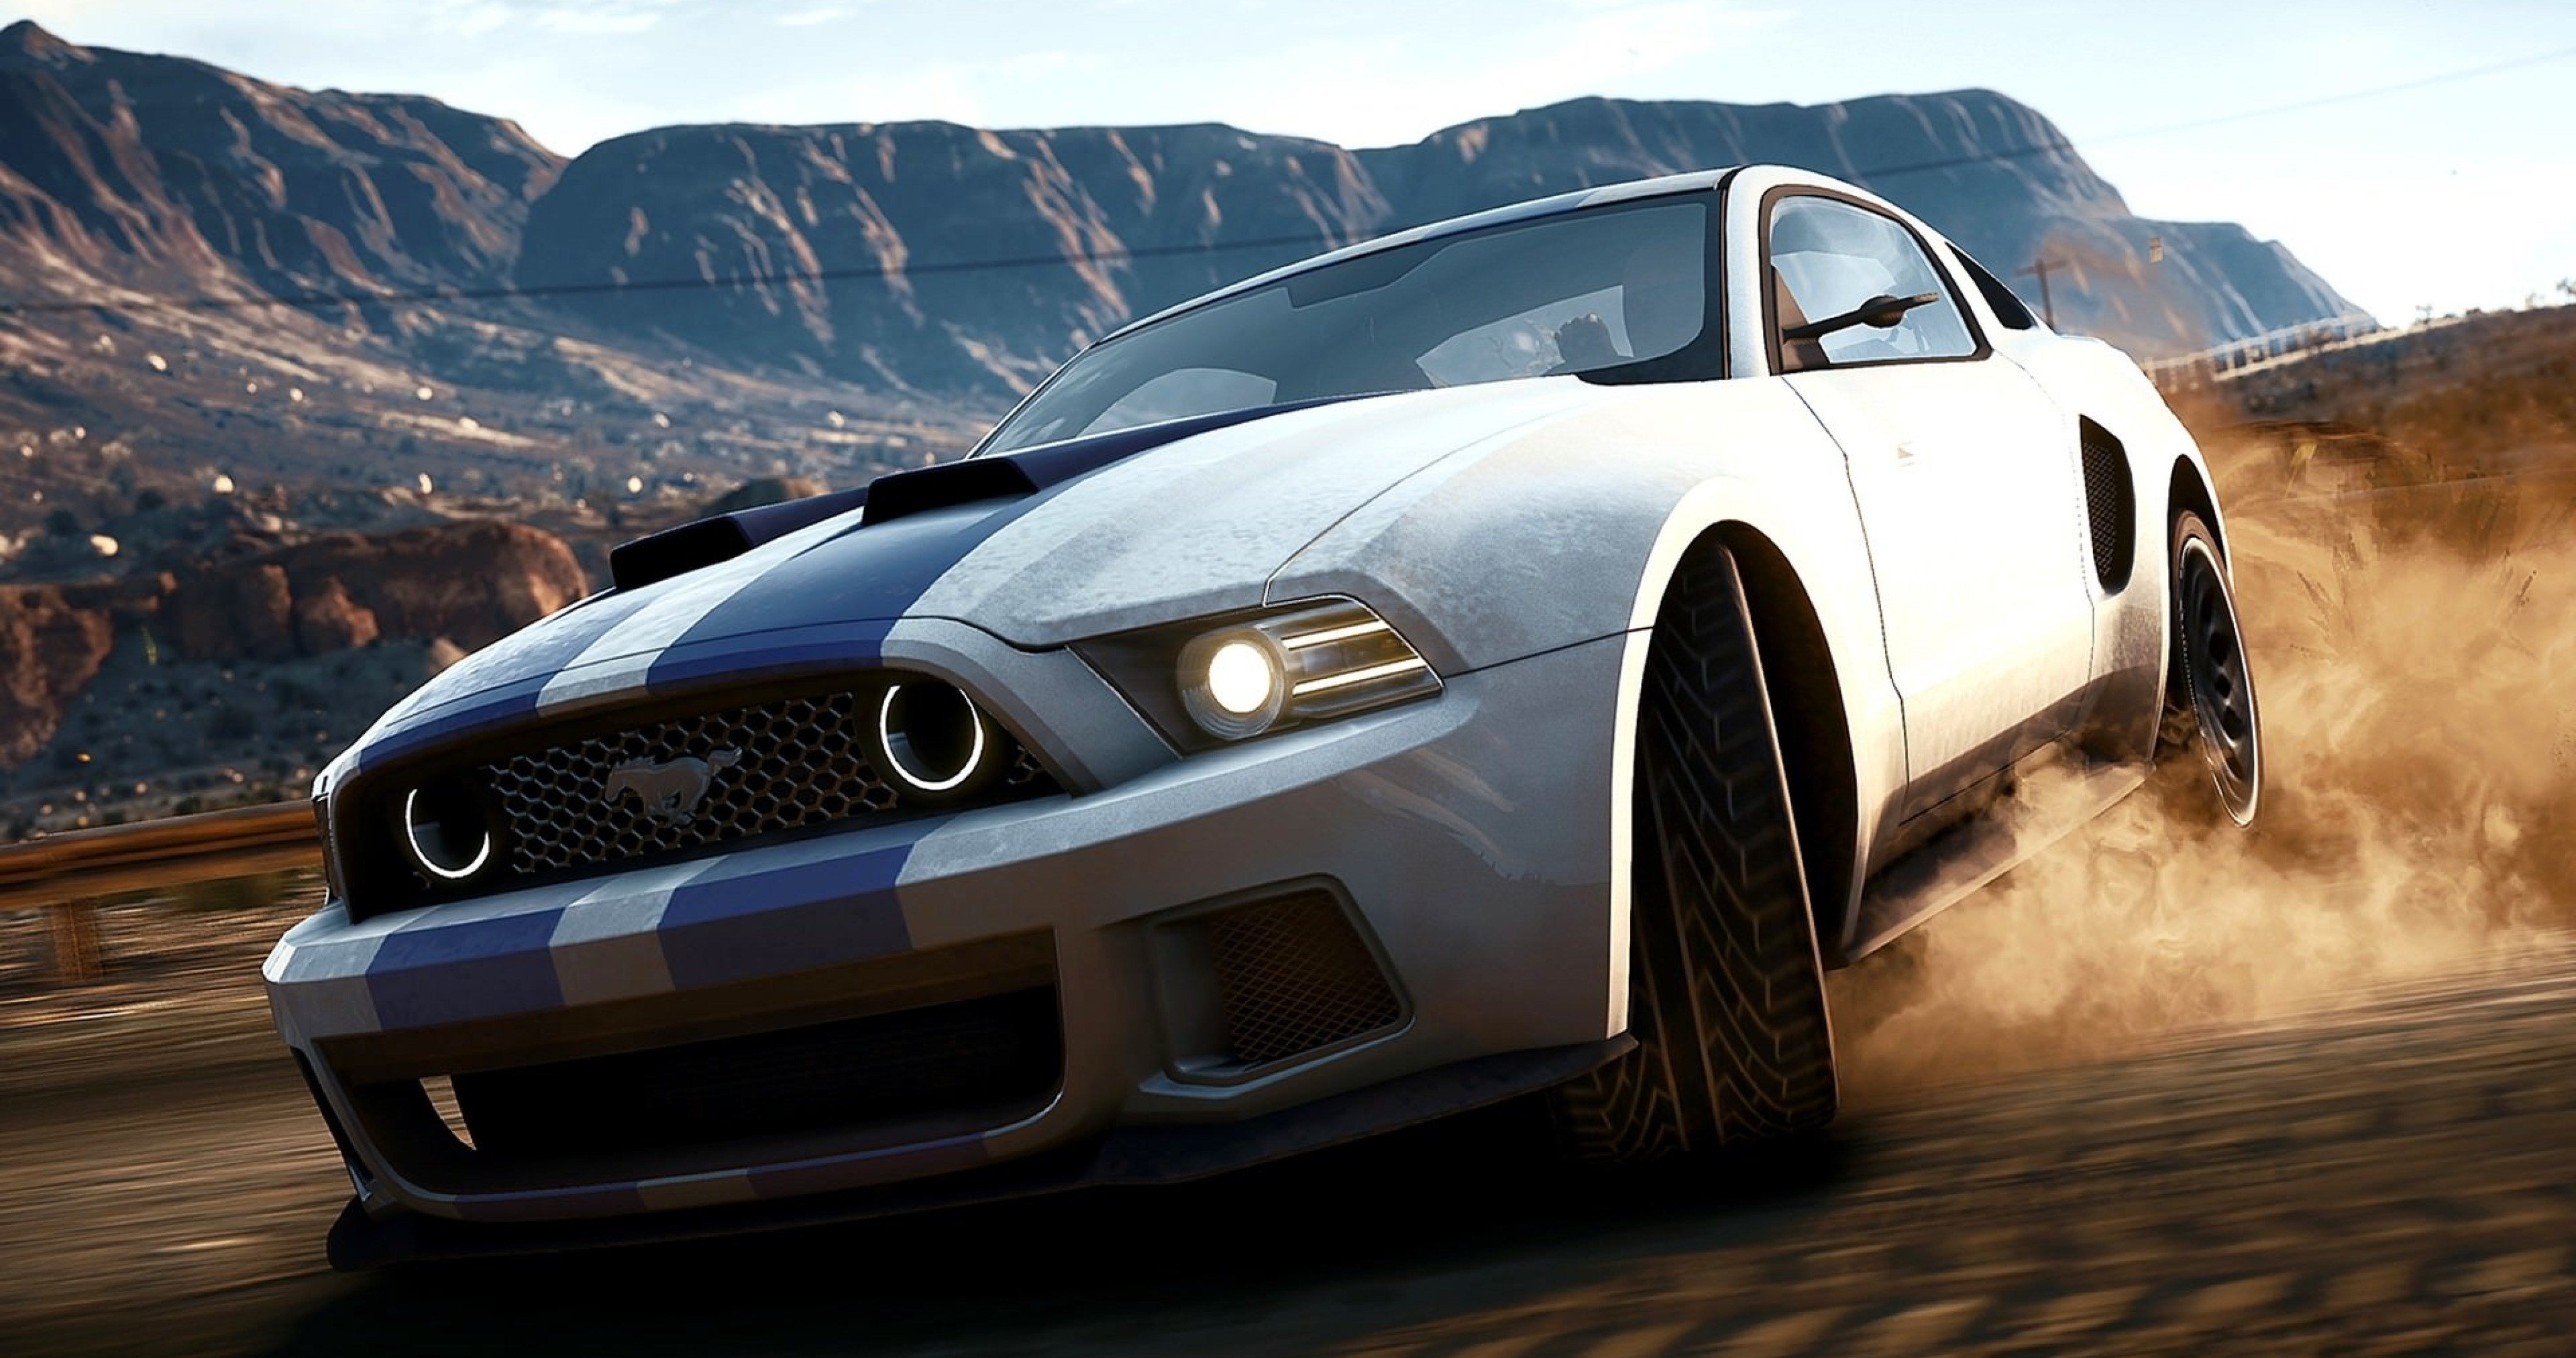 Game Need For Speed Rivals 4k Ultra Hd Wallpaper High